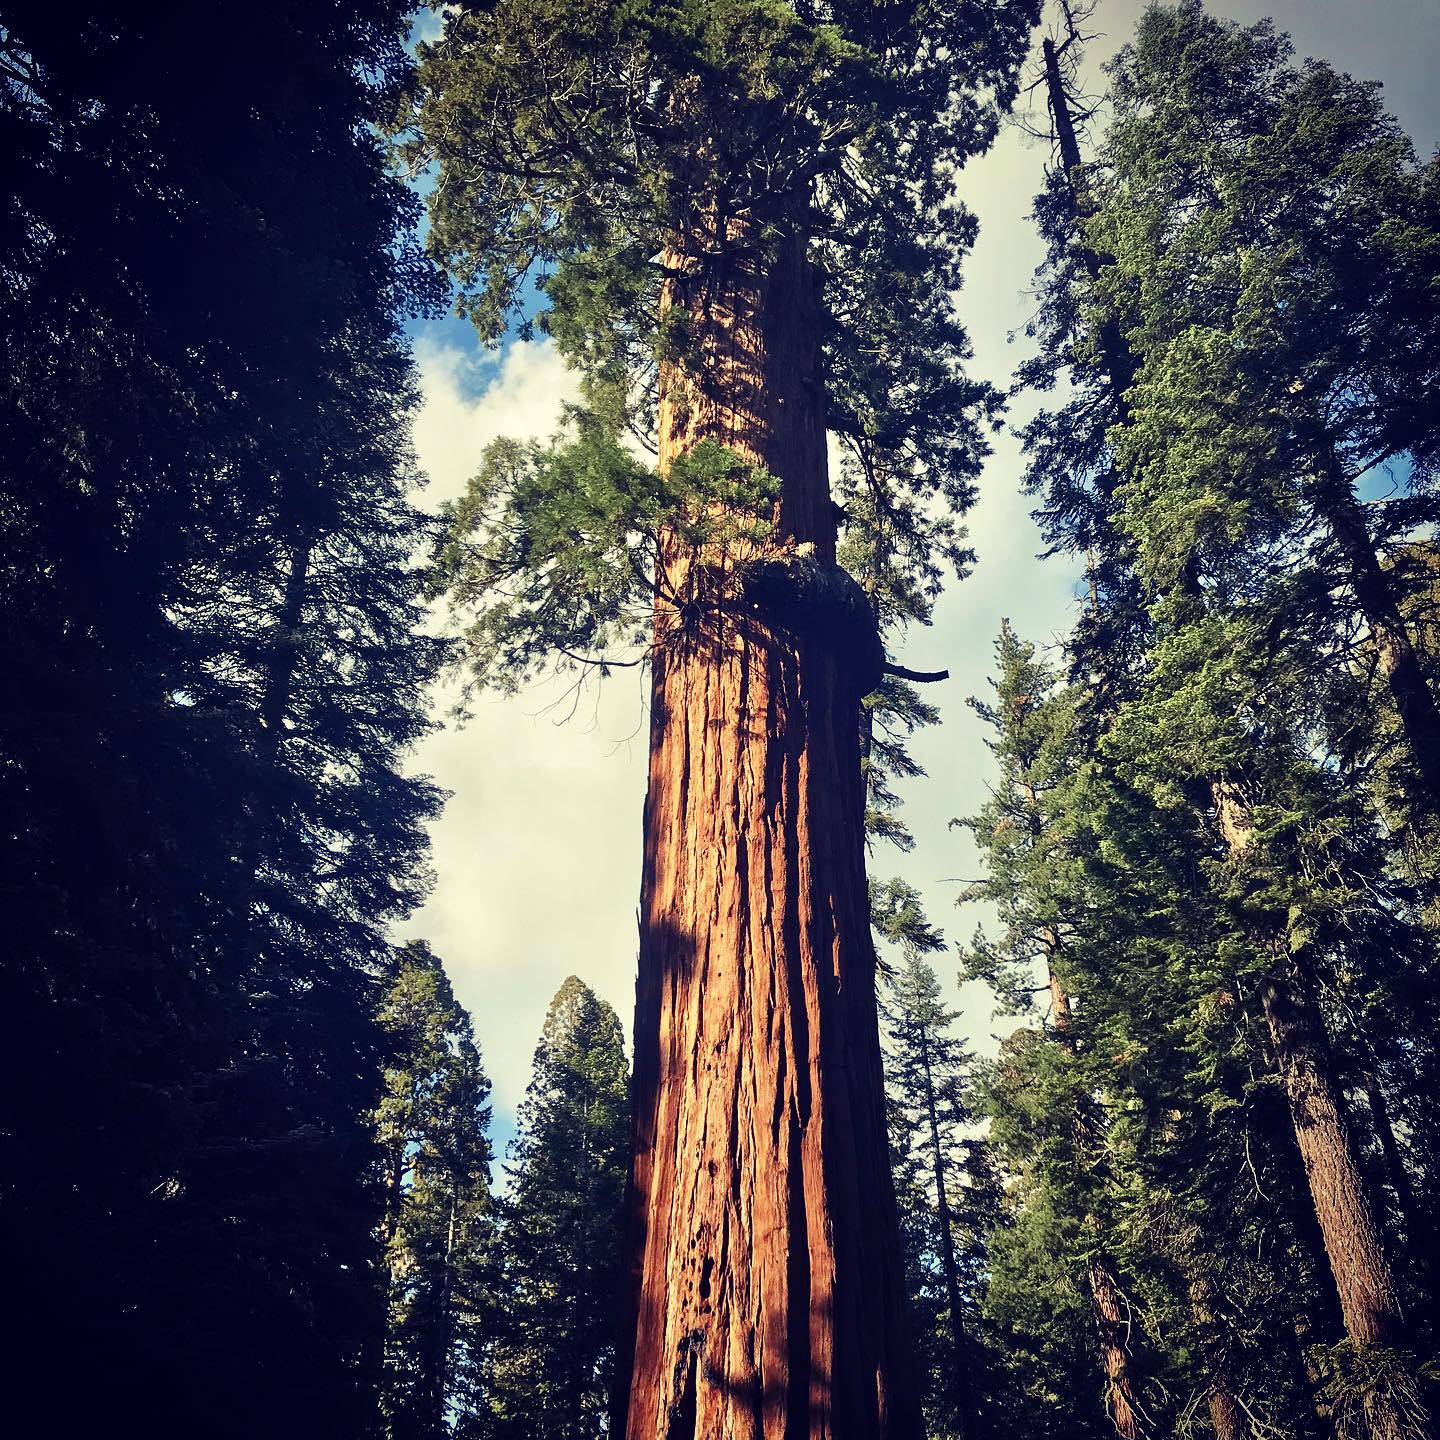 The Sequoia National Park & King's Canyon Travel Guide